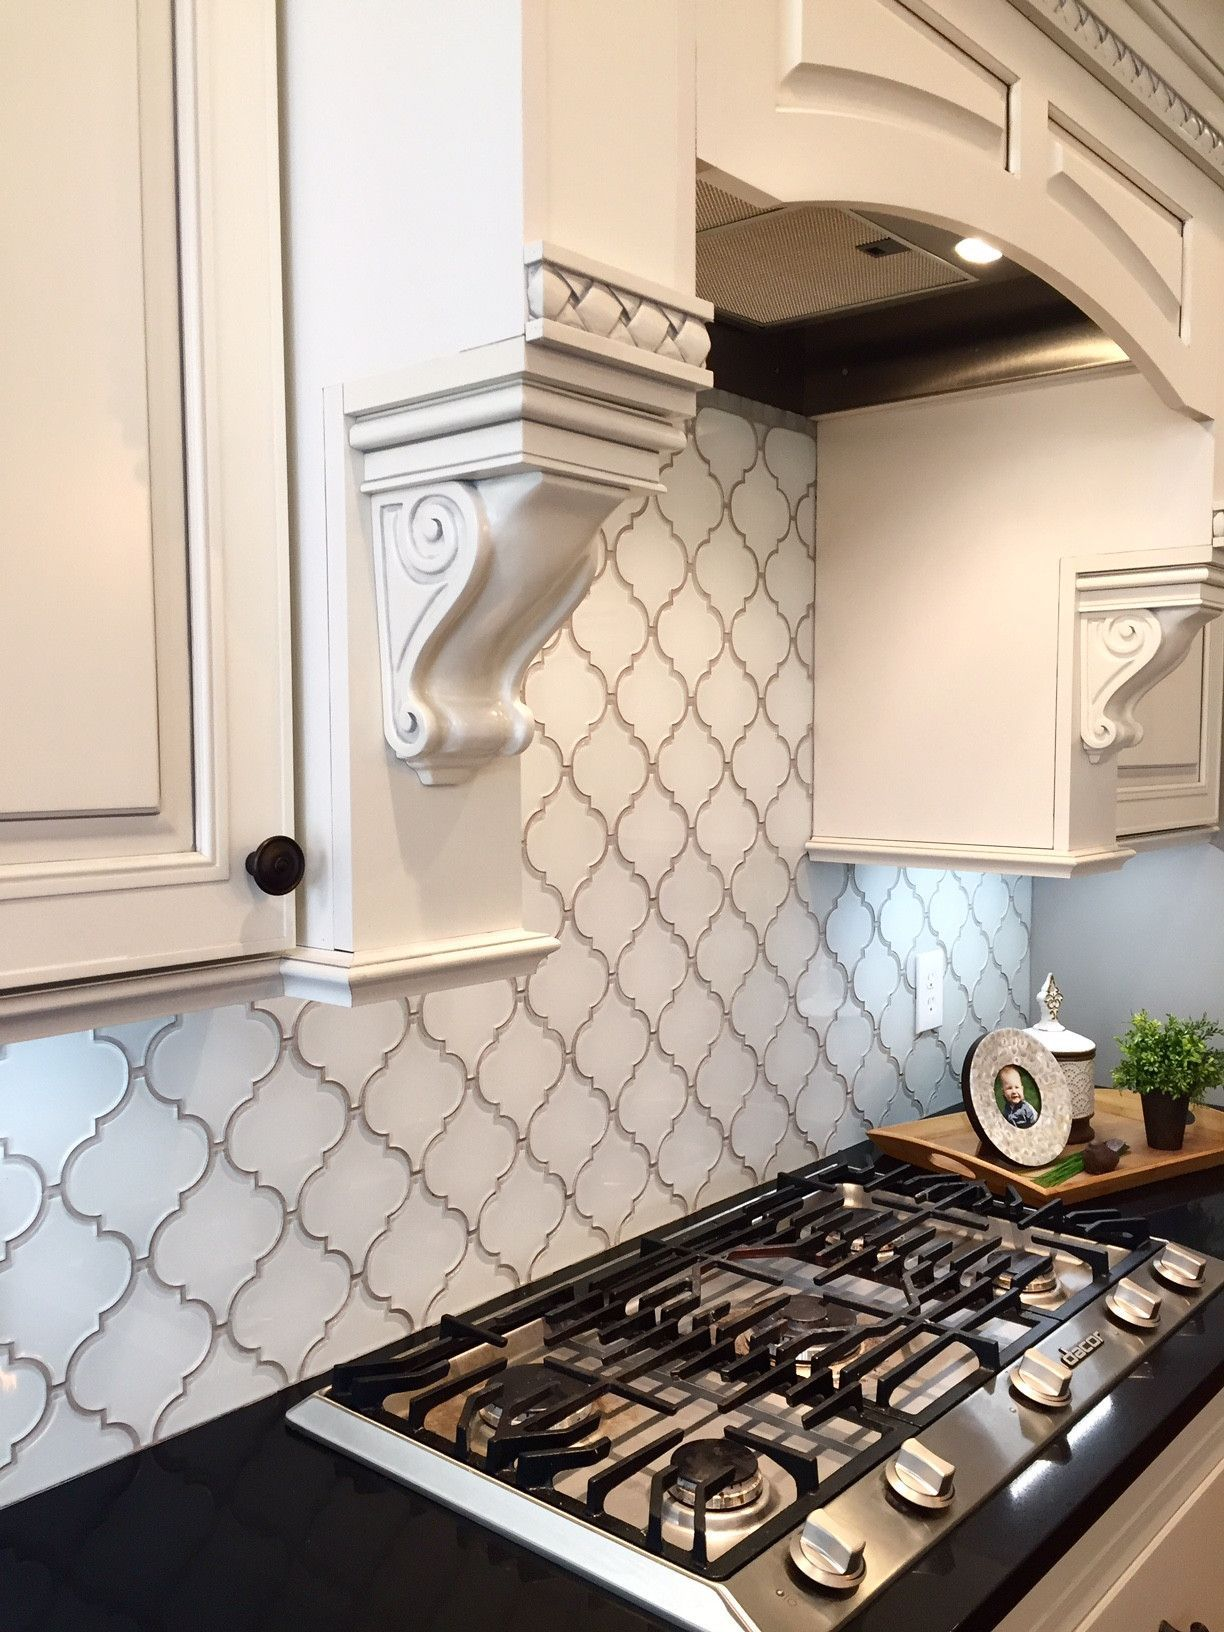 kitchen backsplash glass tiles apartment size appliances snow white arabesque mosaic